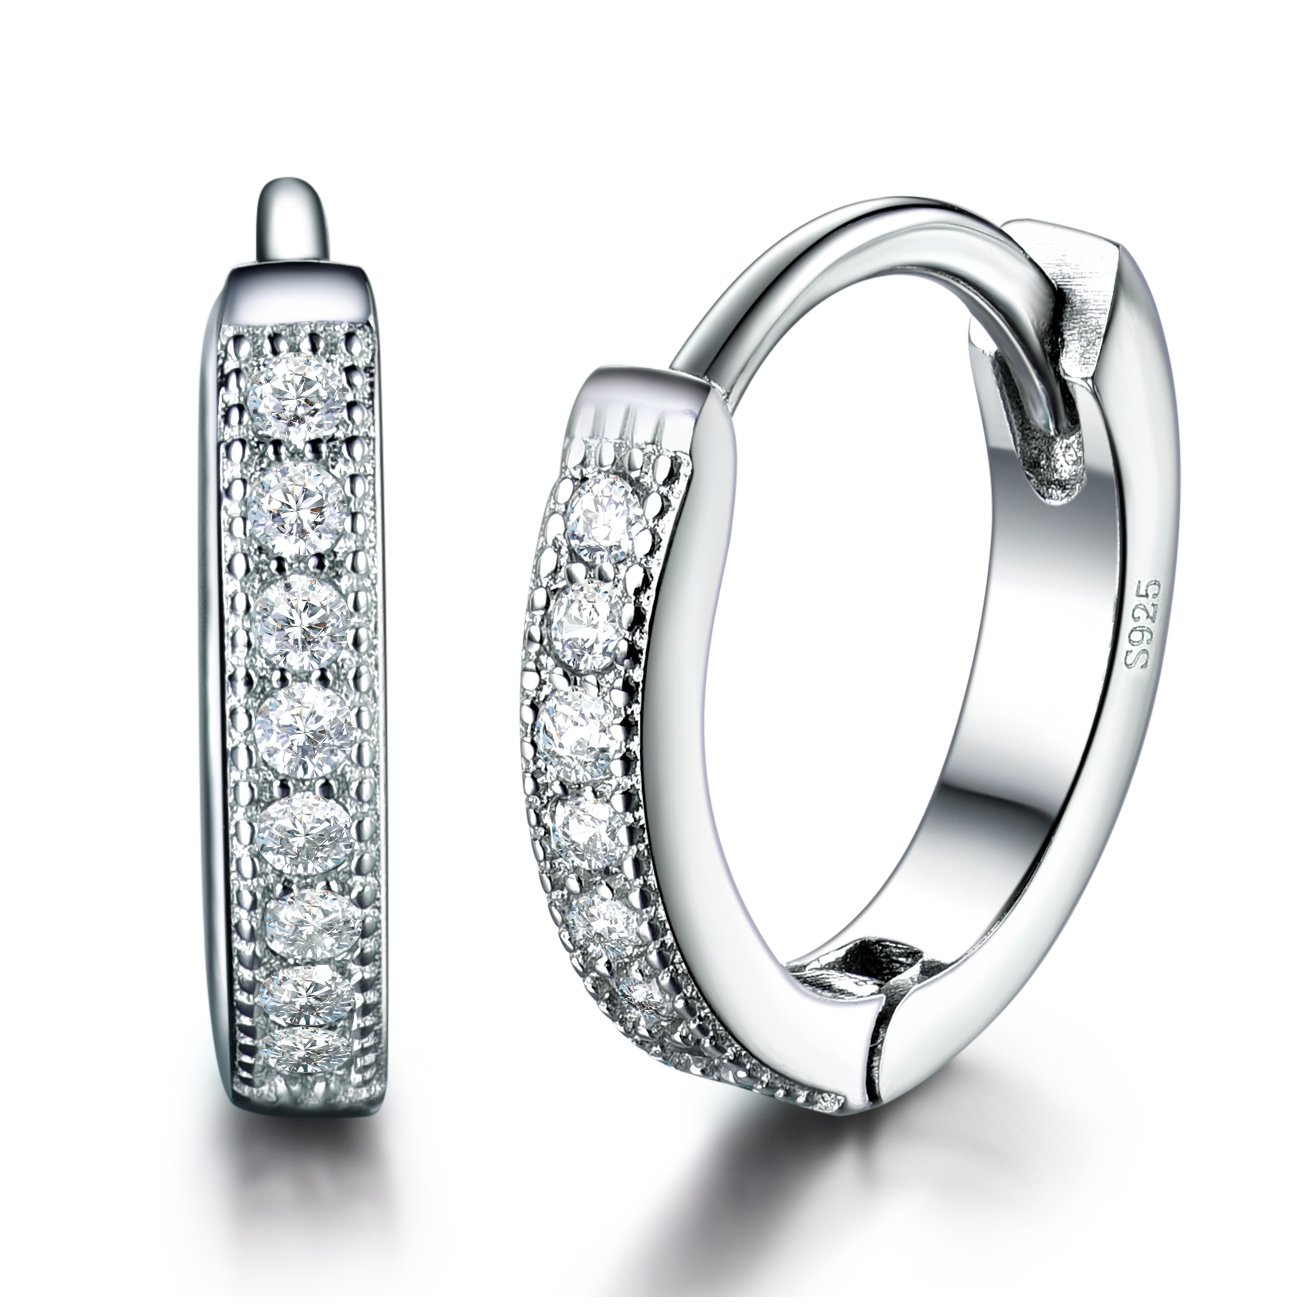 MASOP Women Girls 925 Sterling Silver 13mm Round Tiny Hoop Earrings for Cartilage